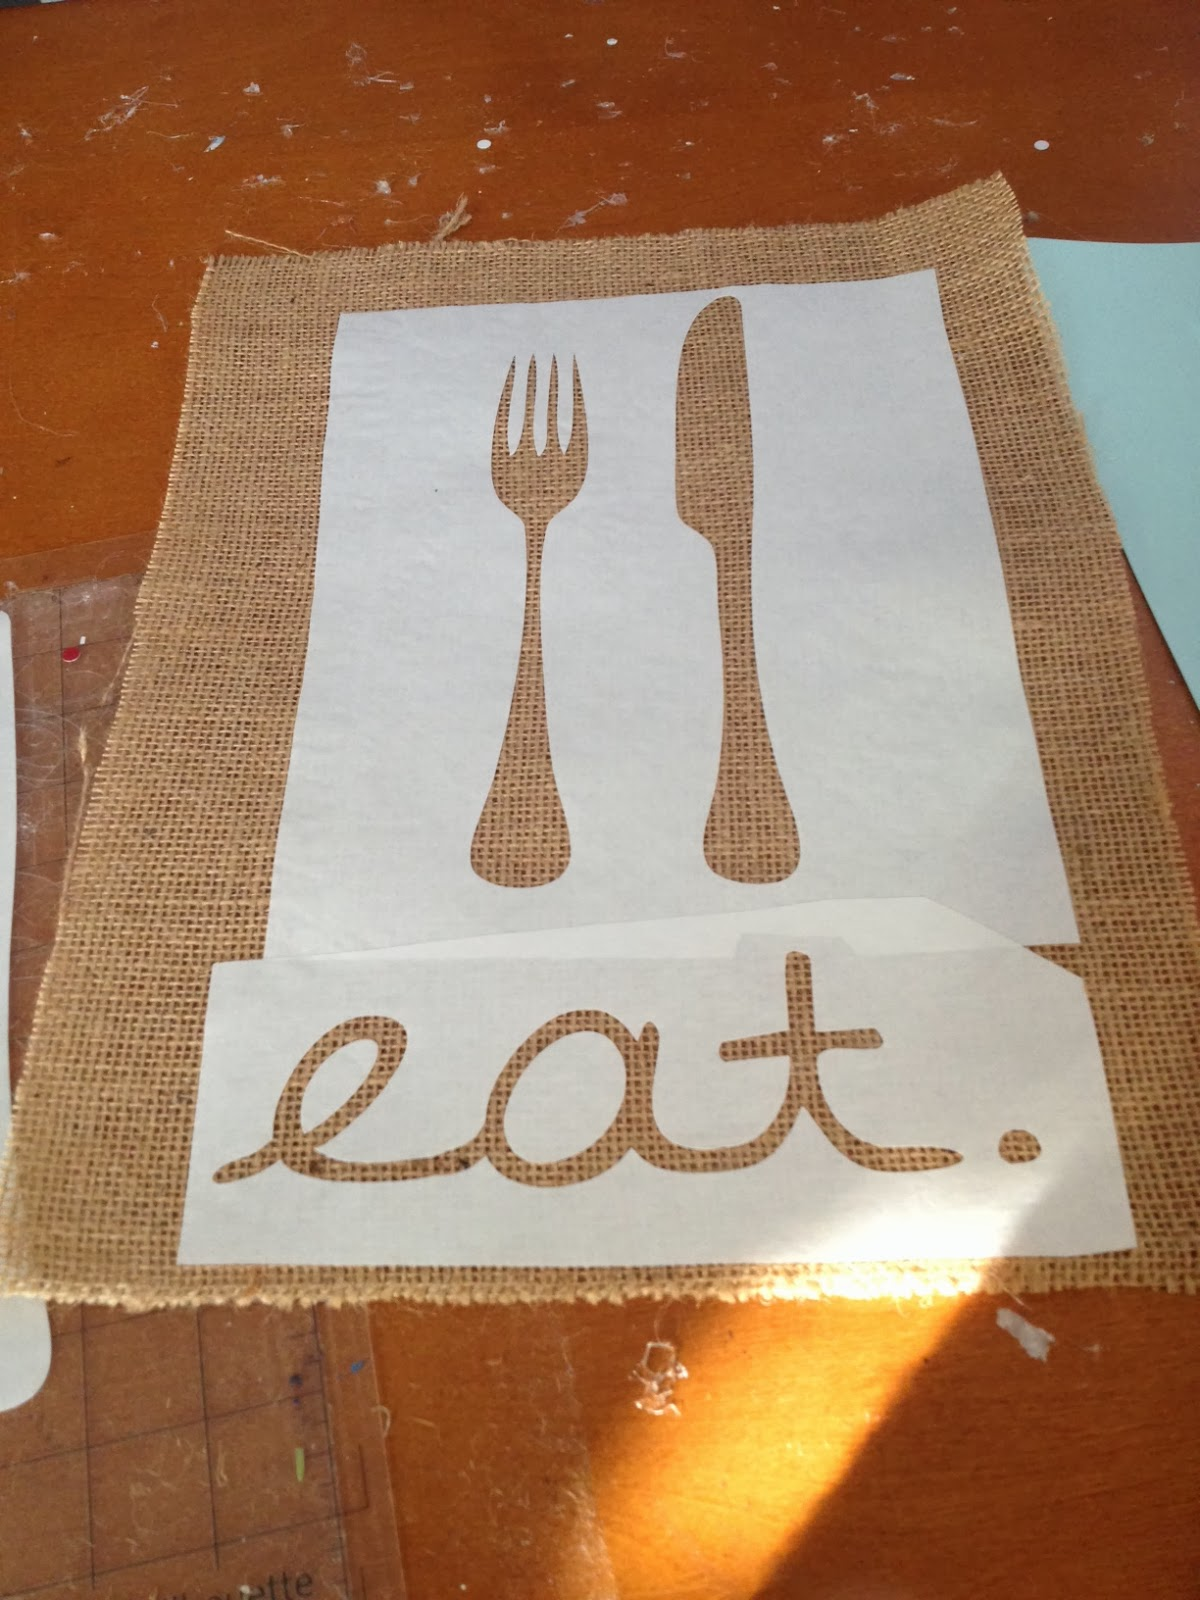 Kitchen art, DIY, do it yourself, Silhouette tutorial, Silhouette Studio, stencil, burlap